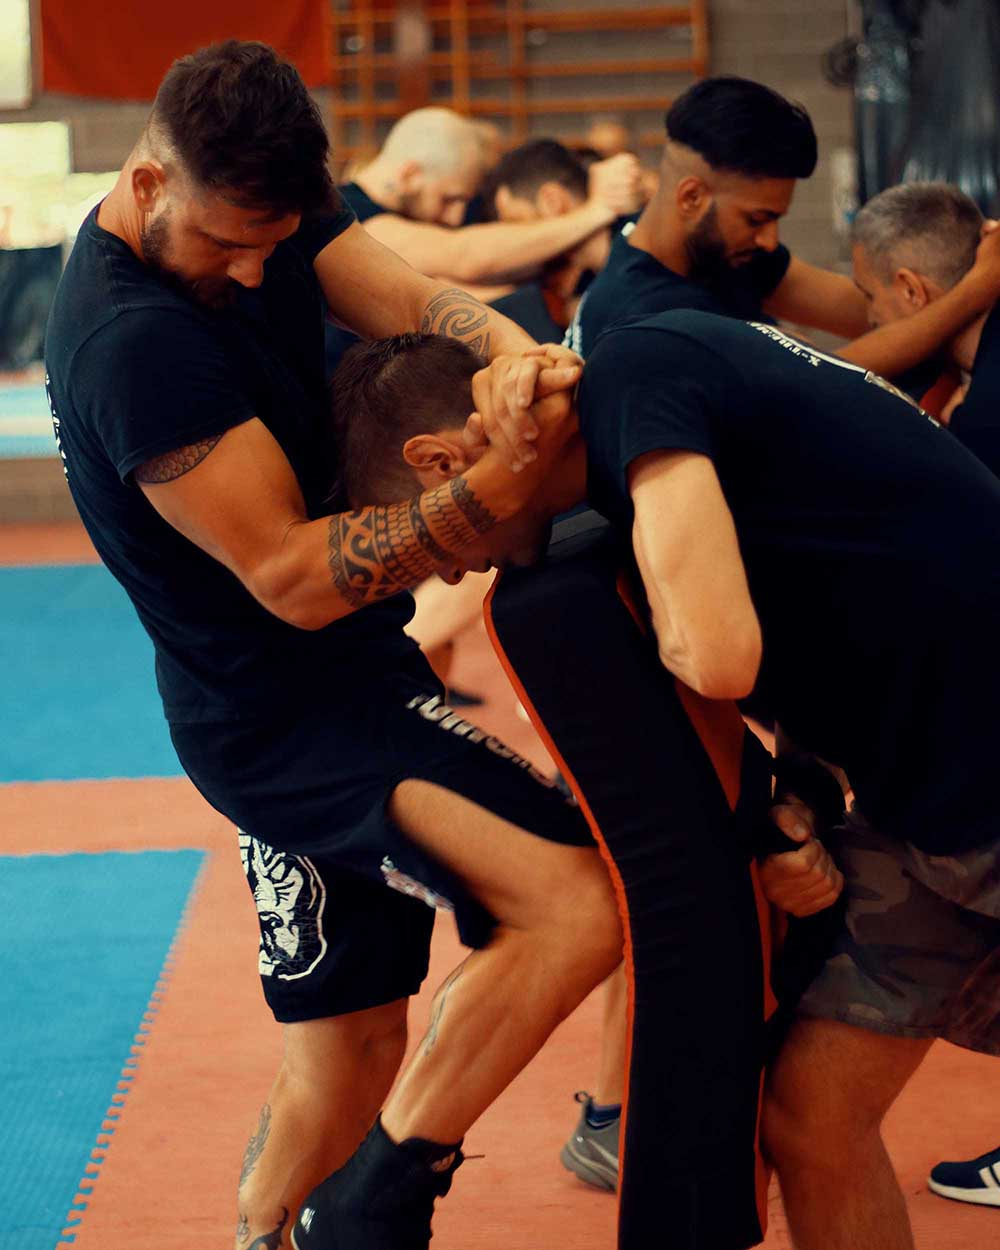 Krav Maga Training hard in our gym | FOTO | PHOTOS